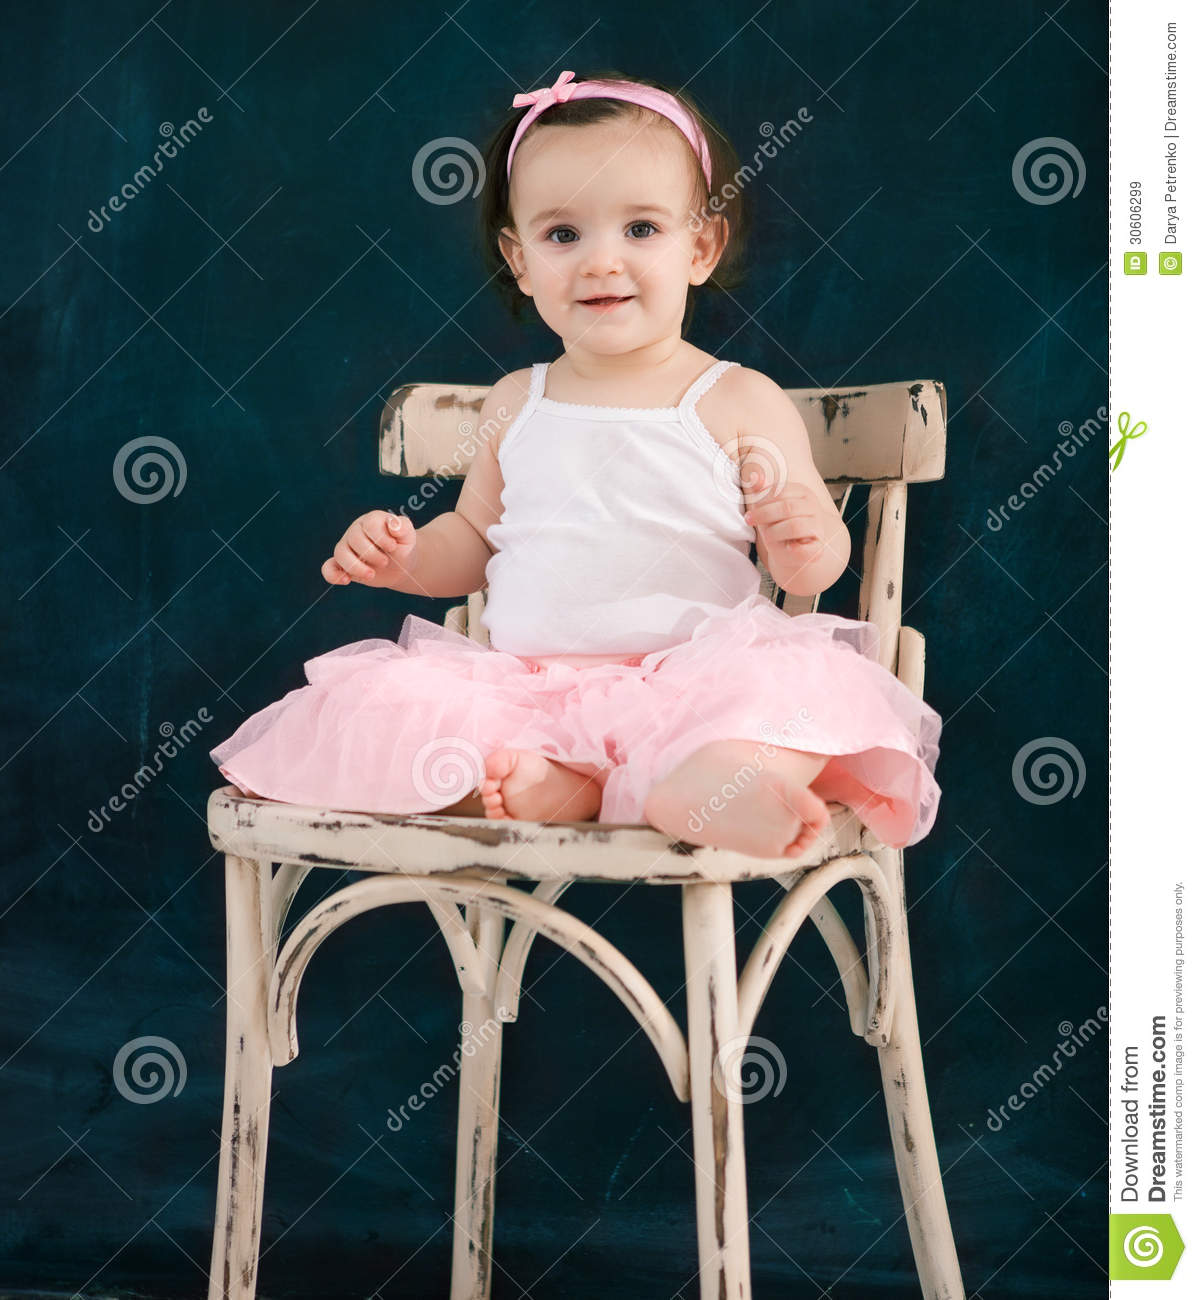 baby chair 1 year old office ergonomic sale portrait of the one wearing ballet suit